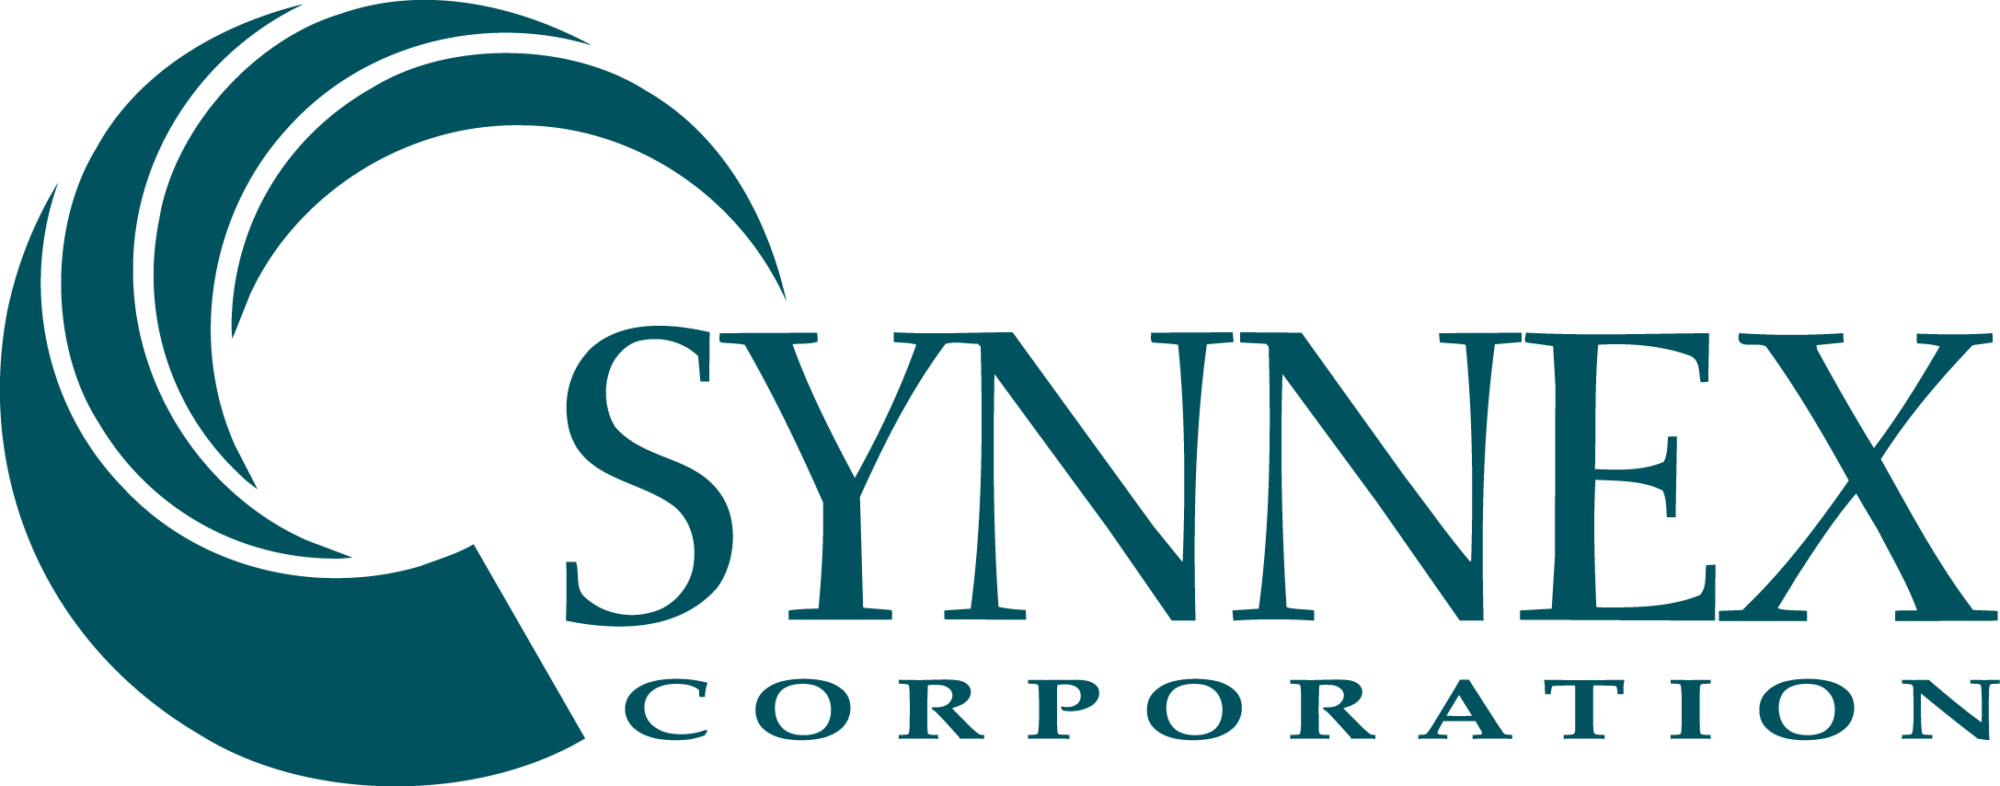 Makers Empire Partnering with Synnex